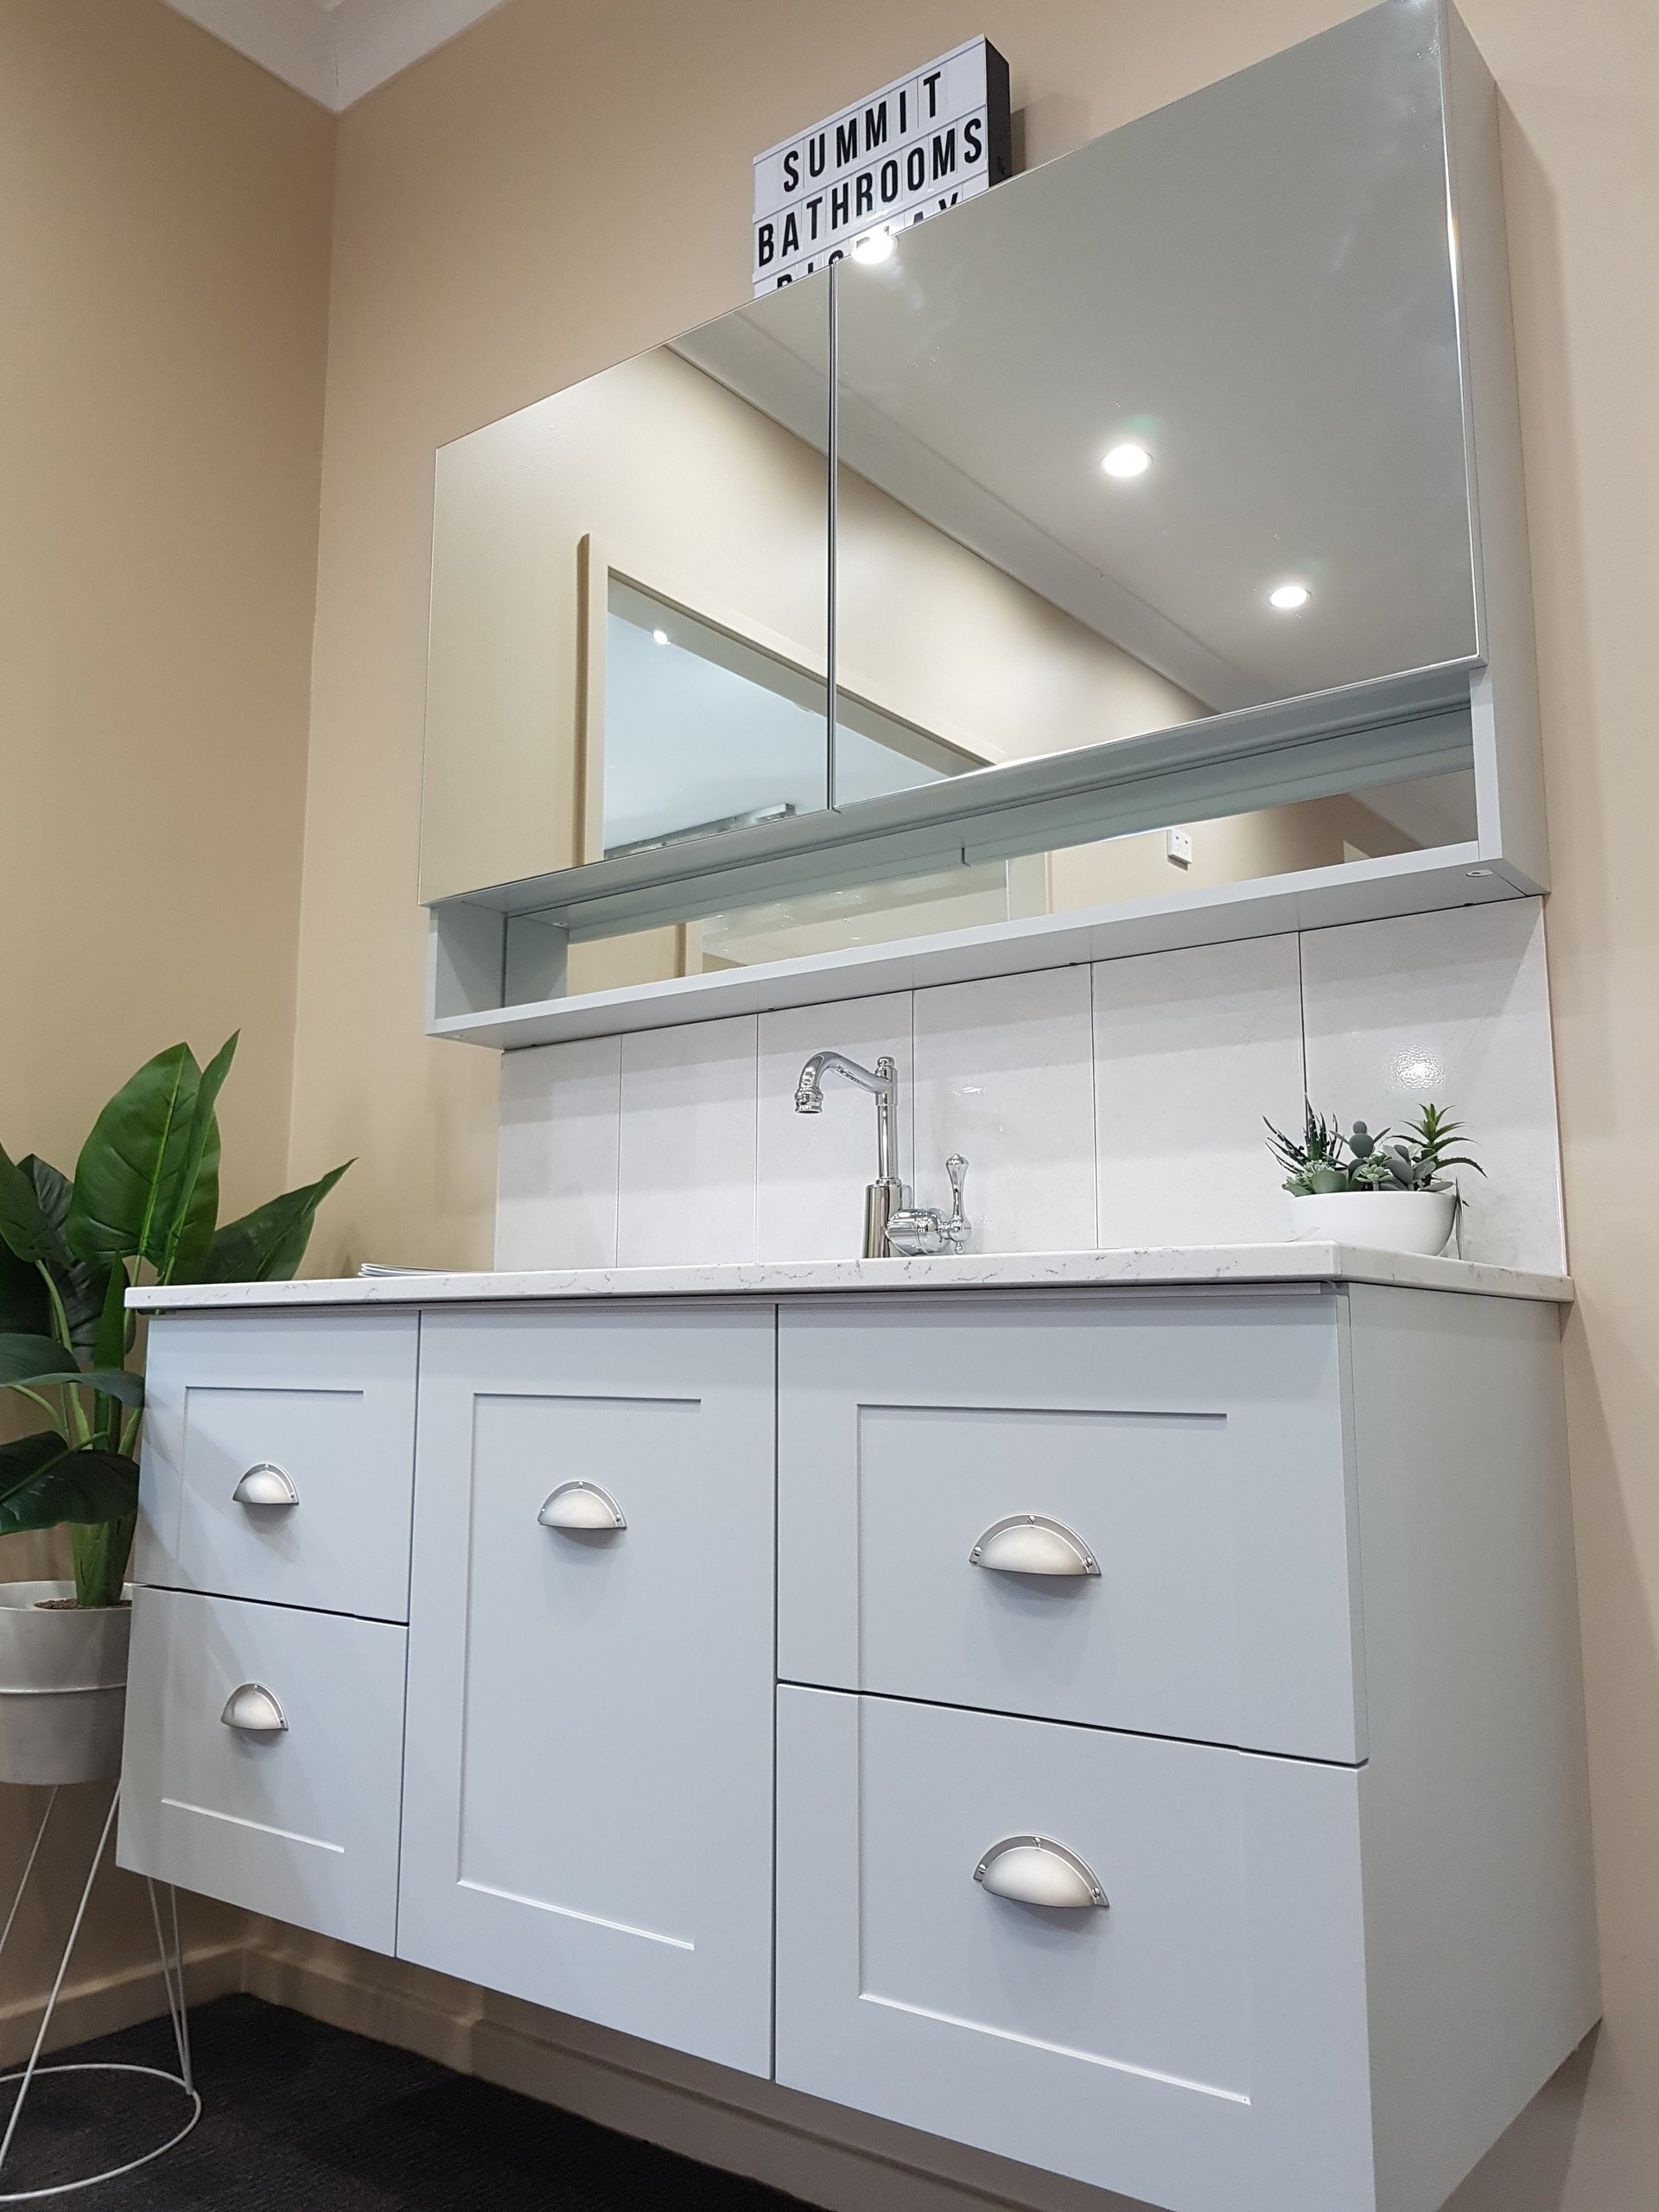 Summit Bathrooms Gallery Photos In Newcastle